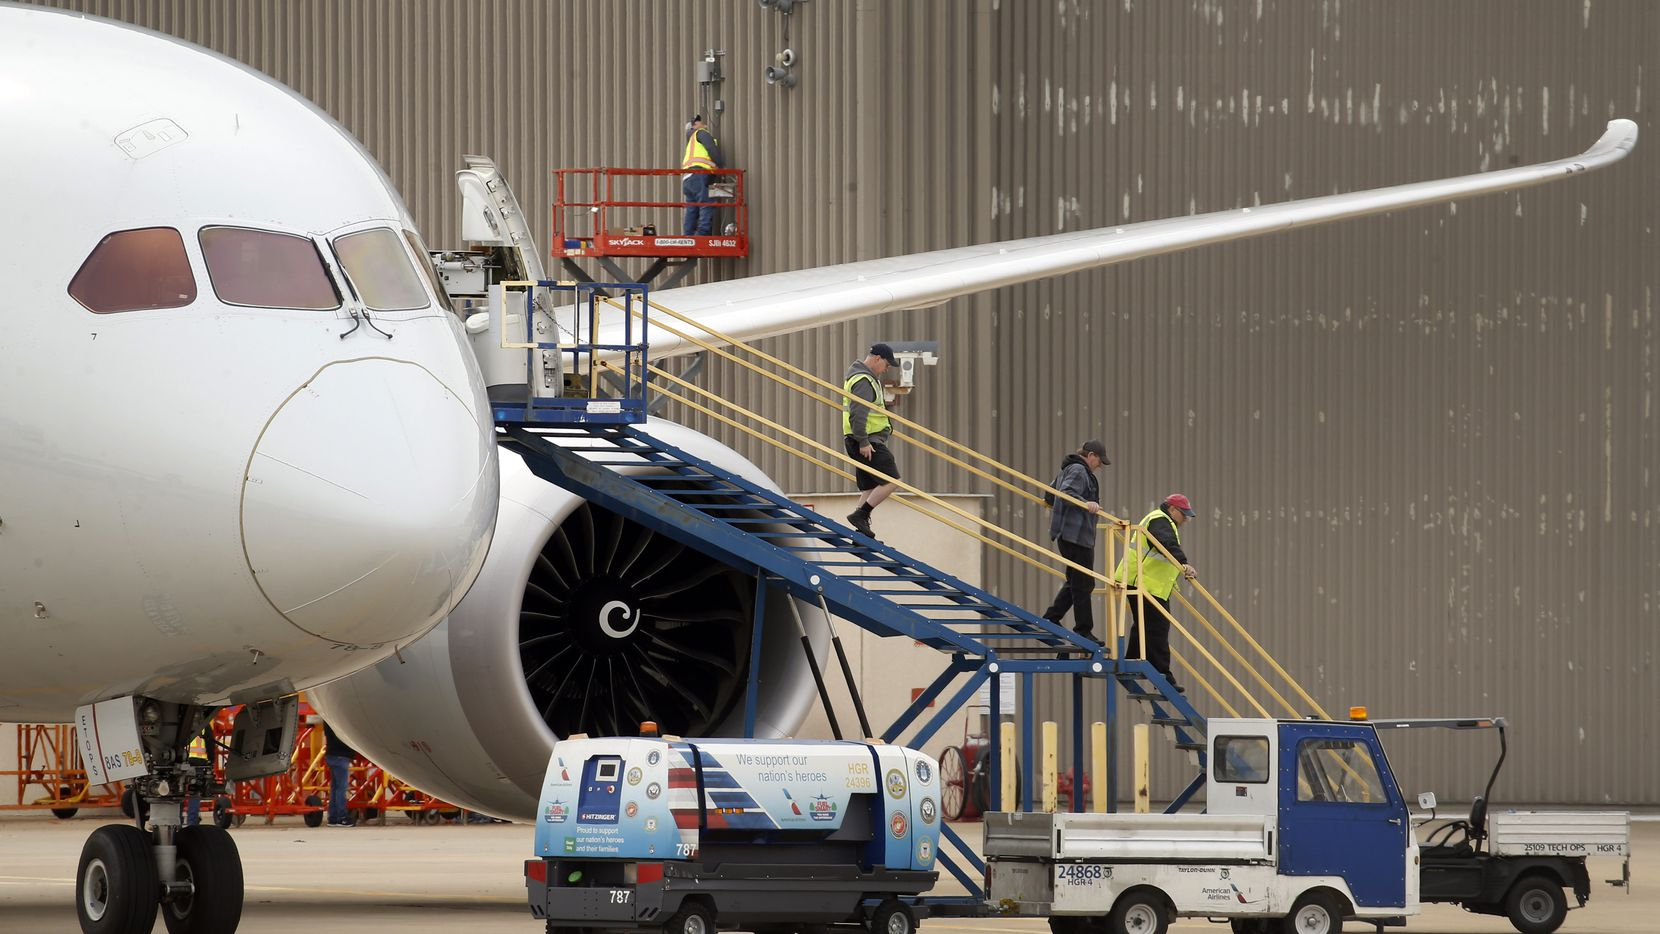 American Airlines maintenance crewmen worked on an aircraft outside a hangar at DFW International Airport on Jan. 21, 2020.